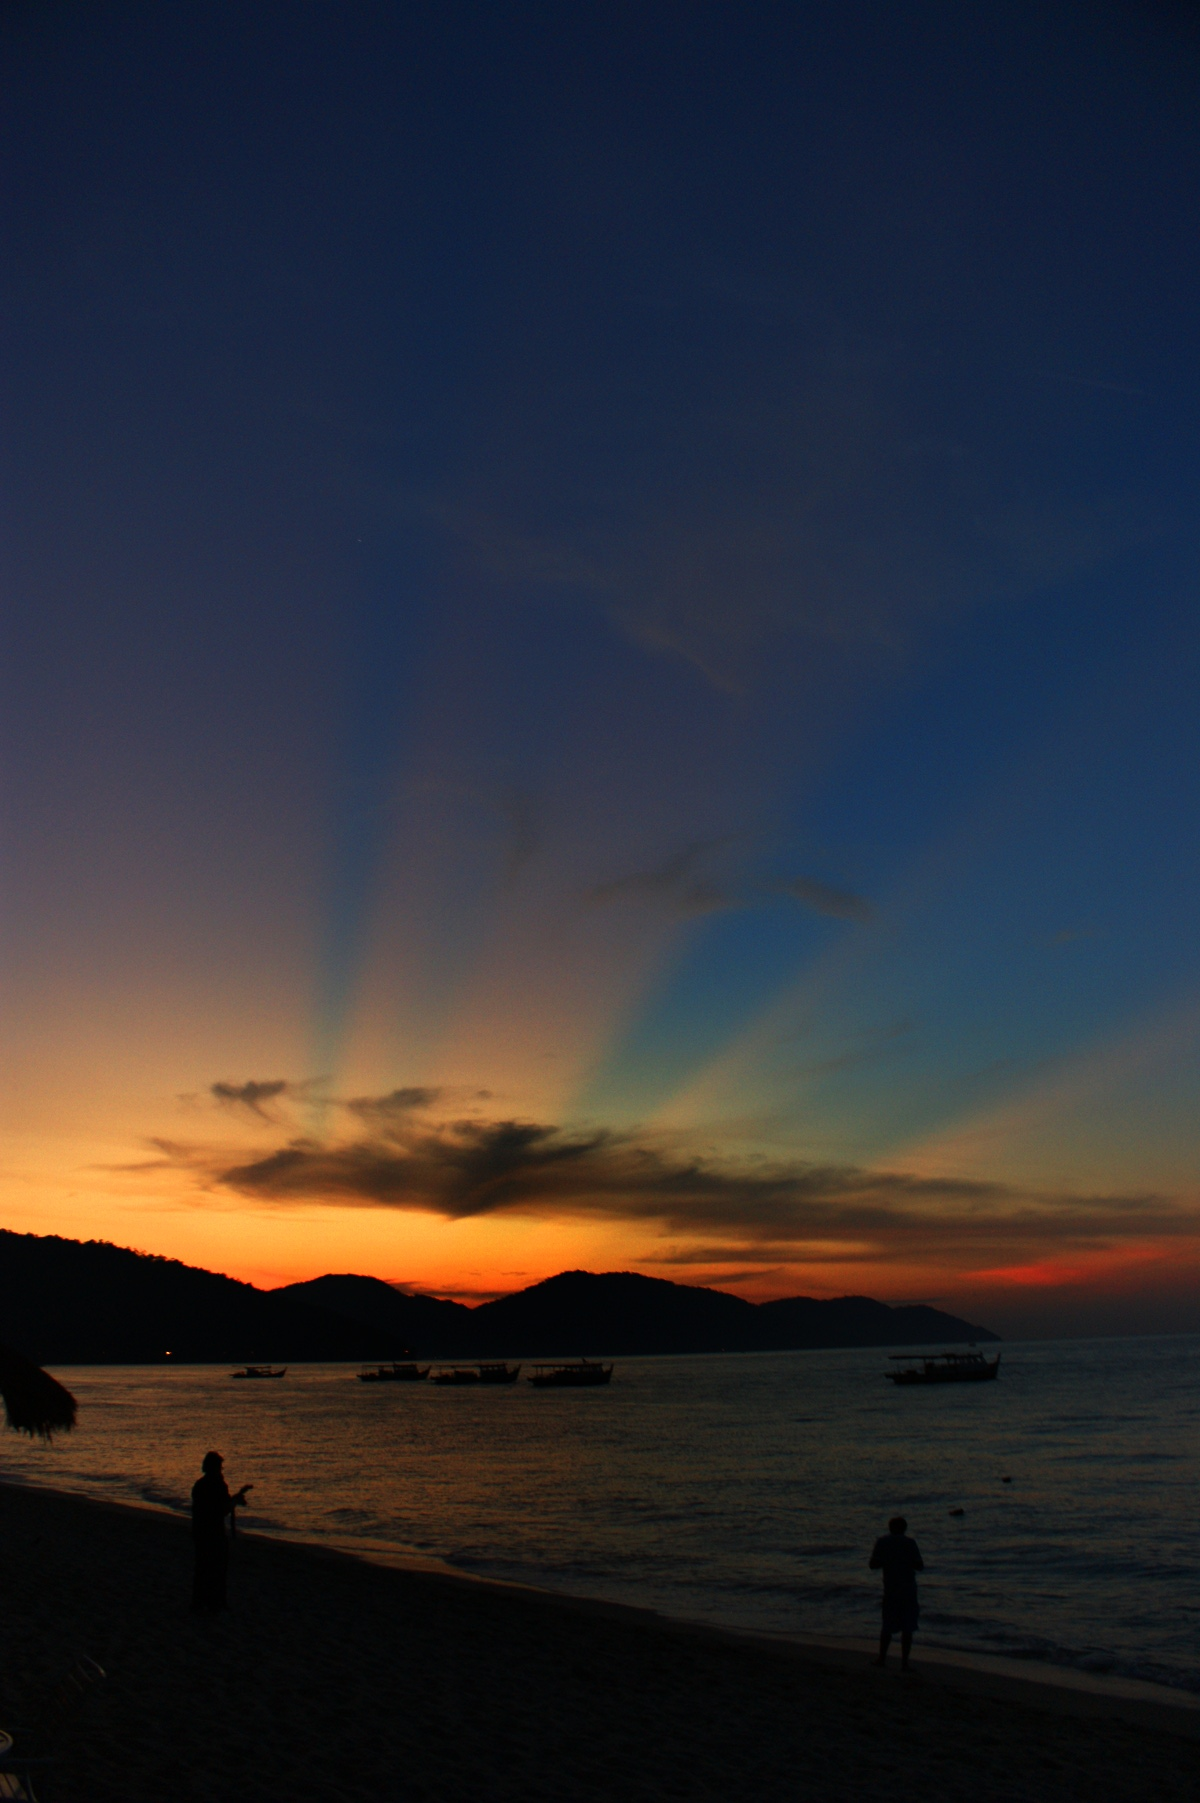 http://www.images.scottphotographics.com/shot-of-the-day/%236/penang-malaysia-beach-sunset-02.jpg